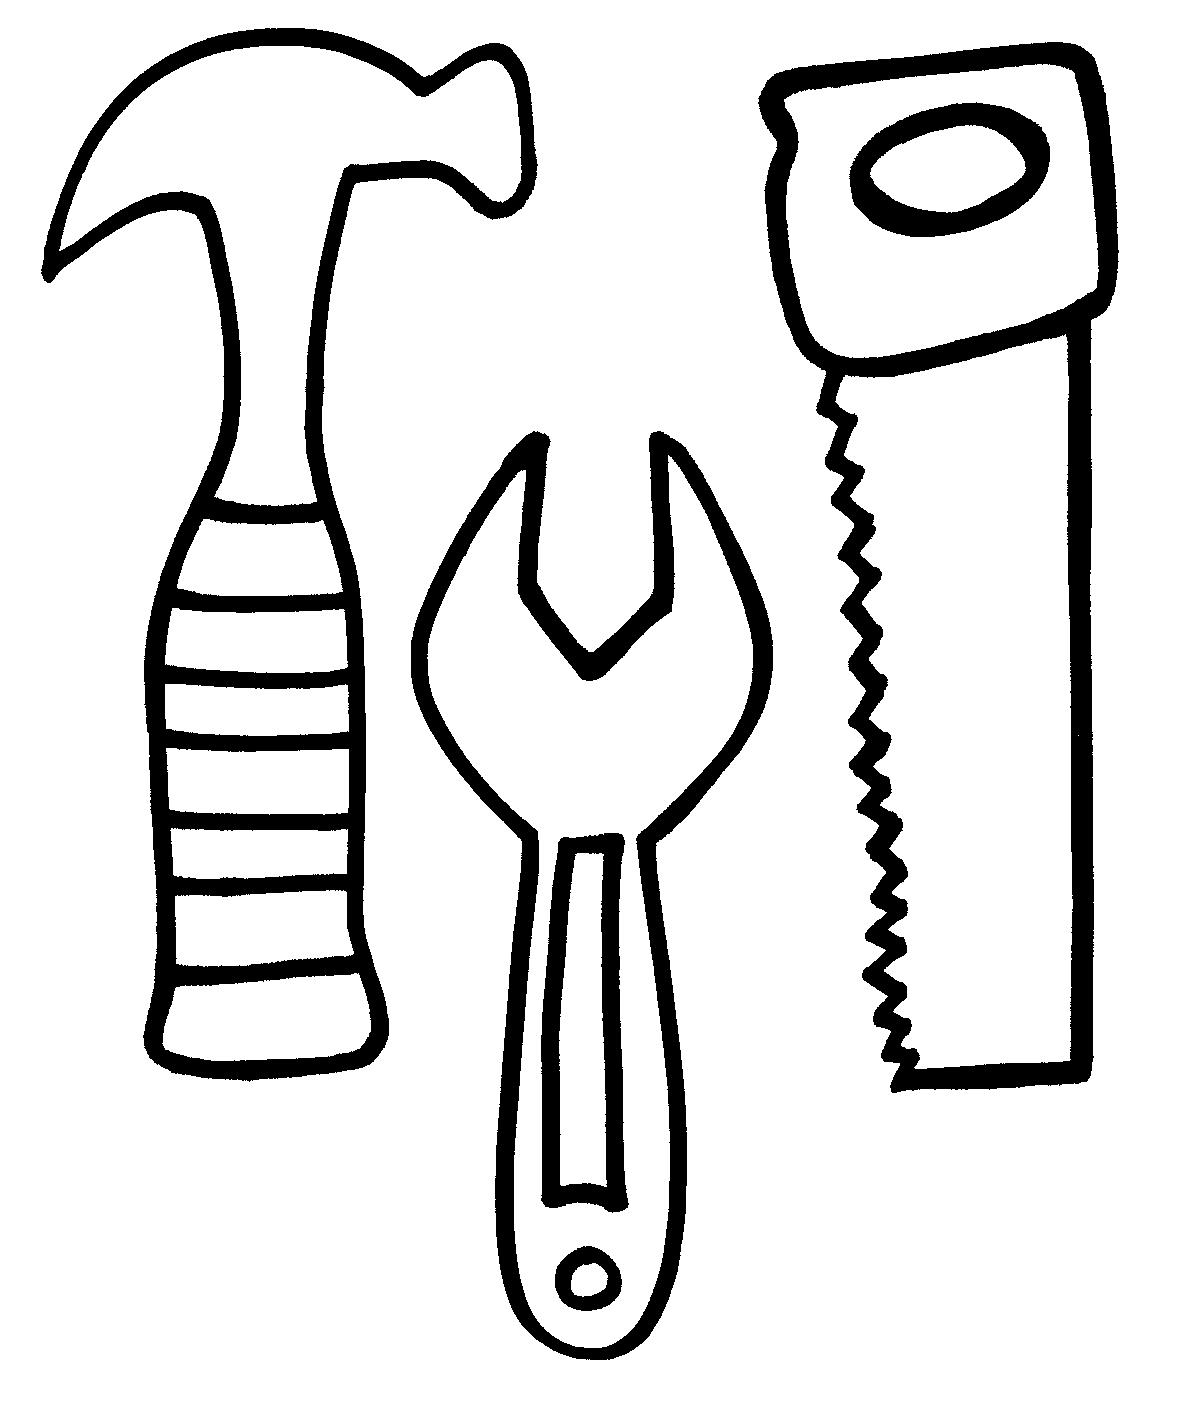 1184x1424 Construction Tools Coloring Pages